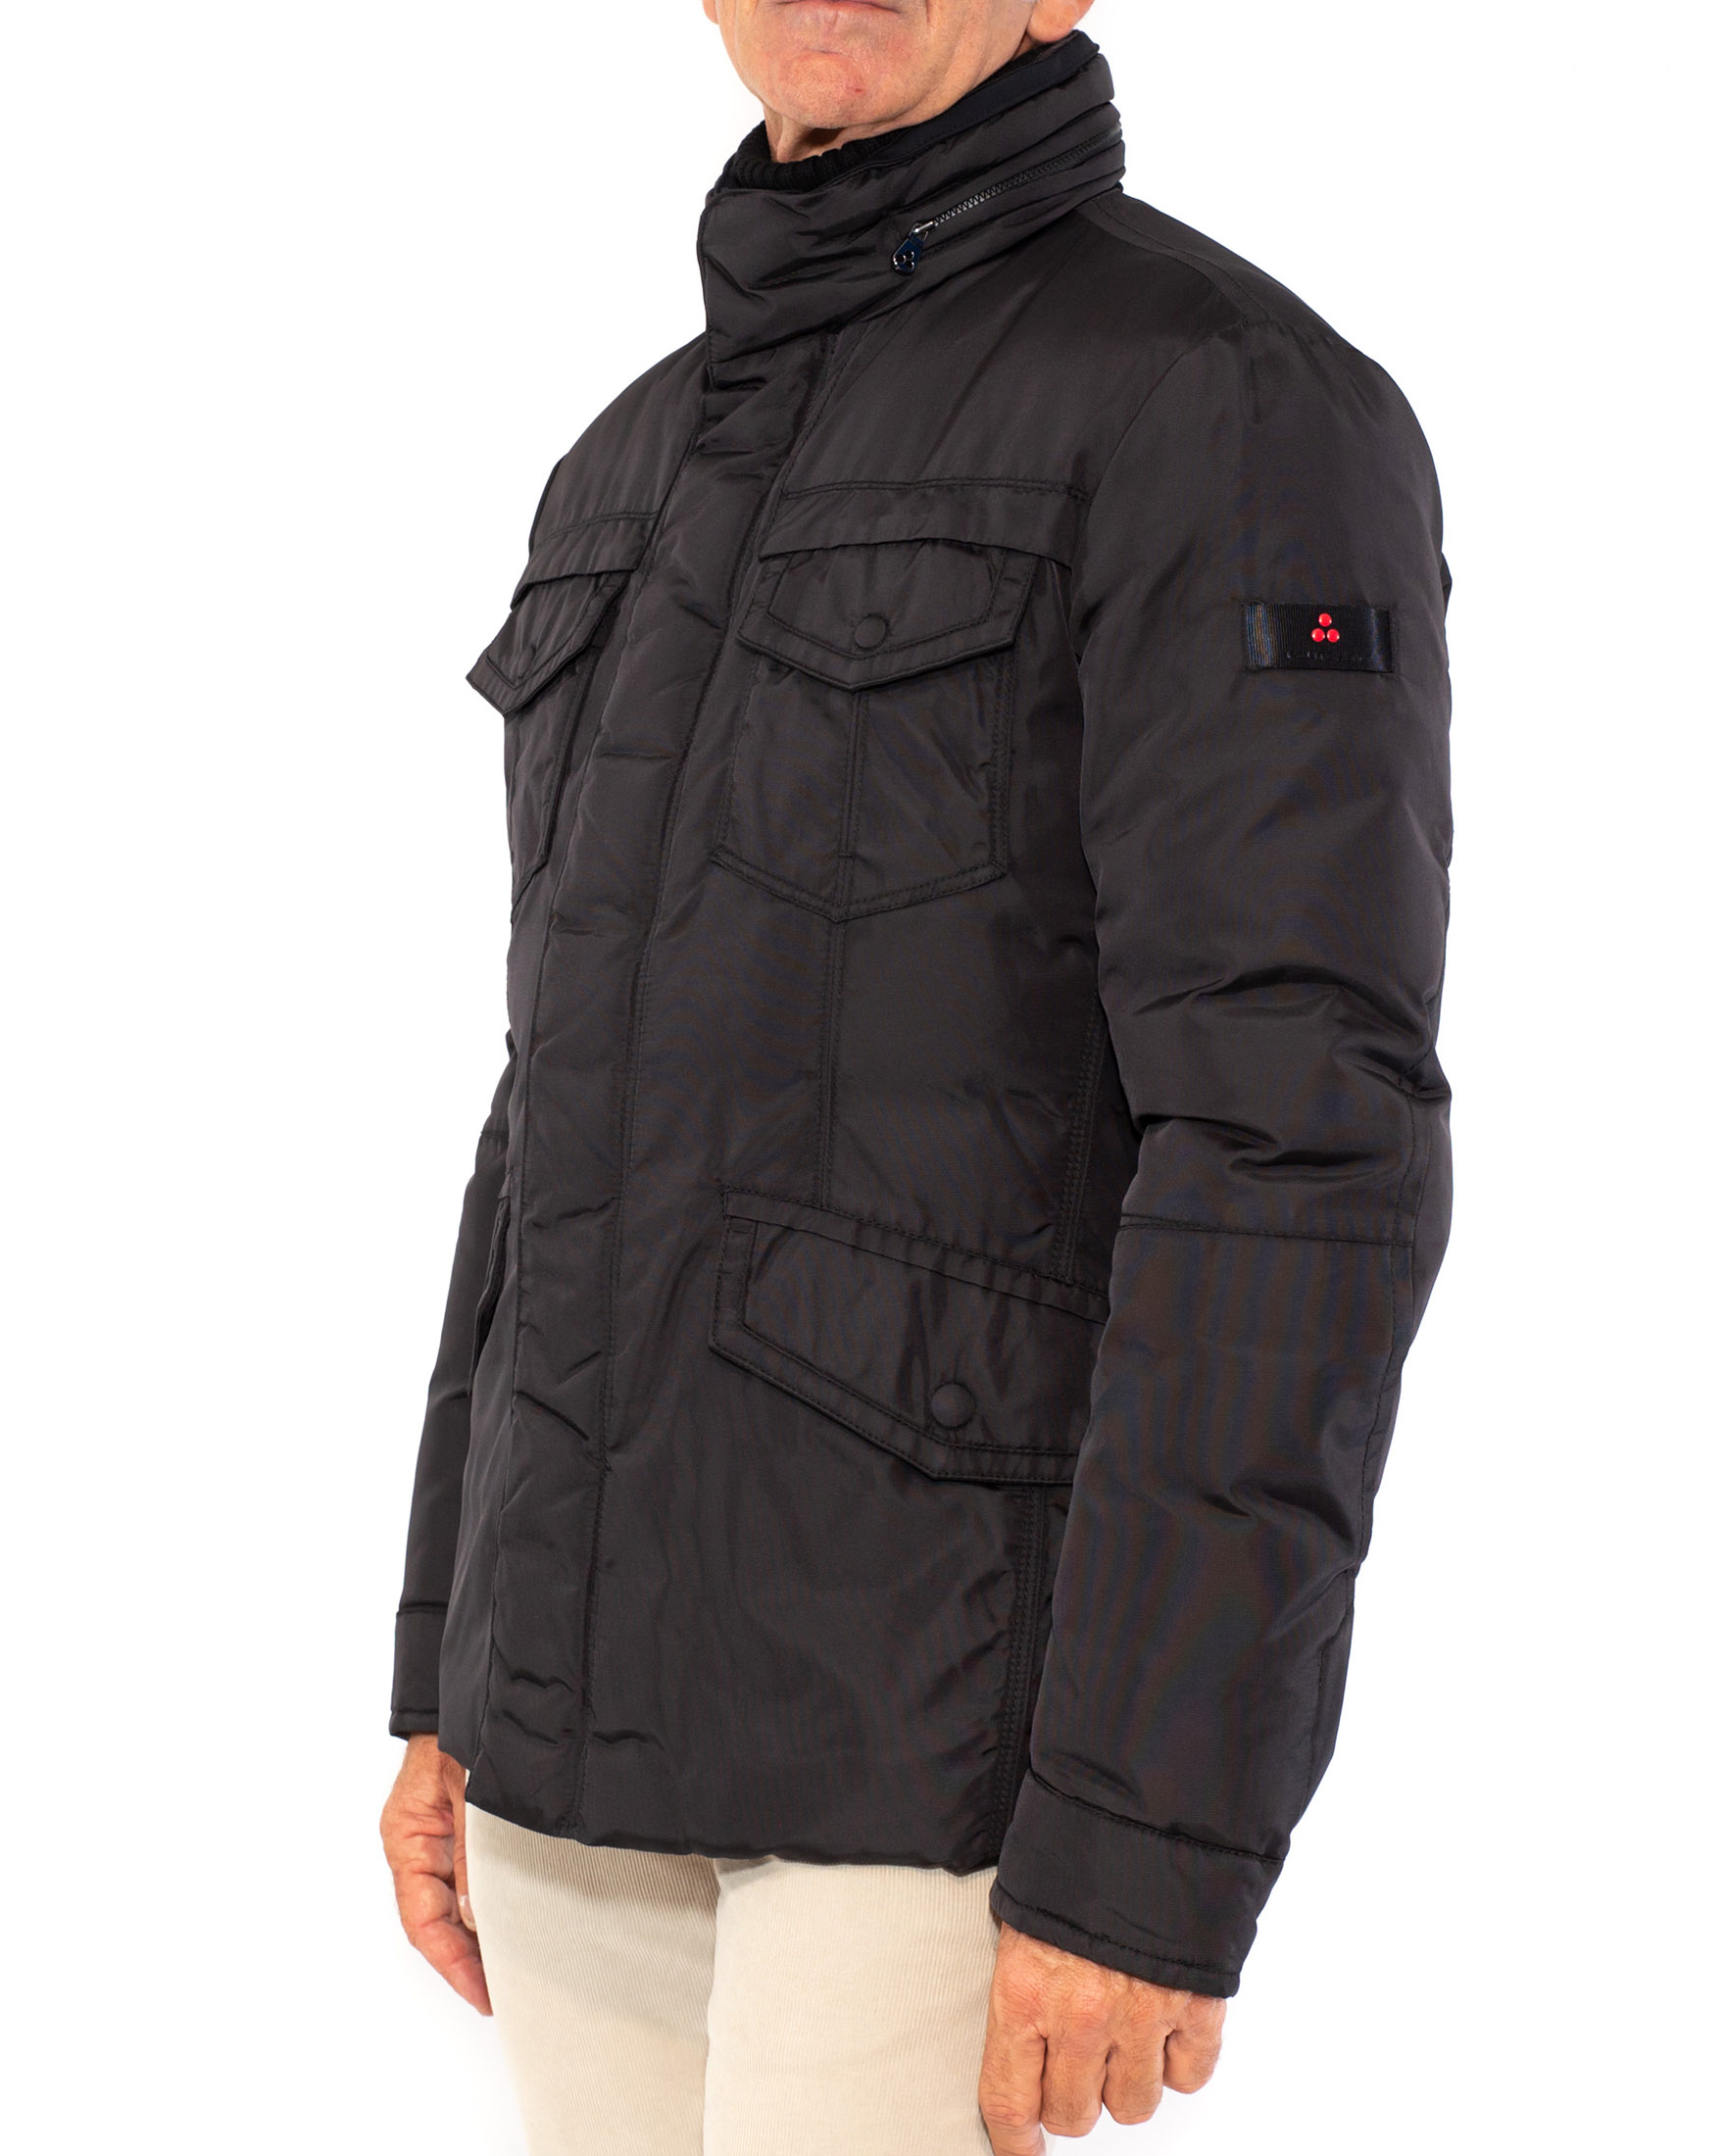 PEUTEREY FIELD JACKET